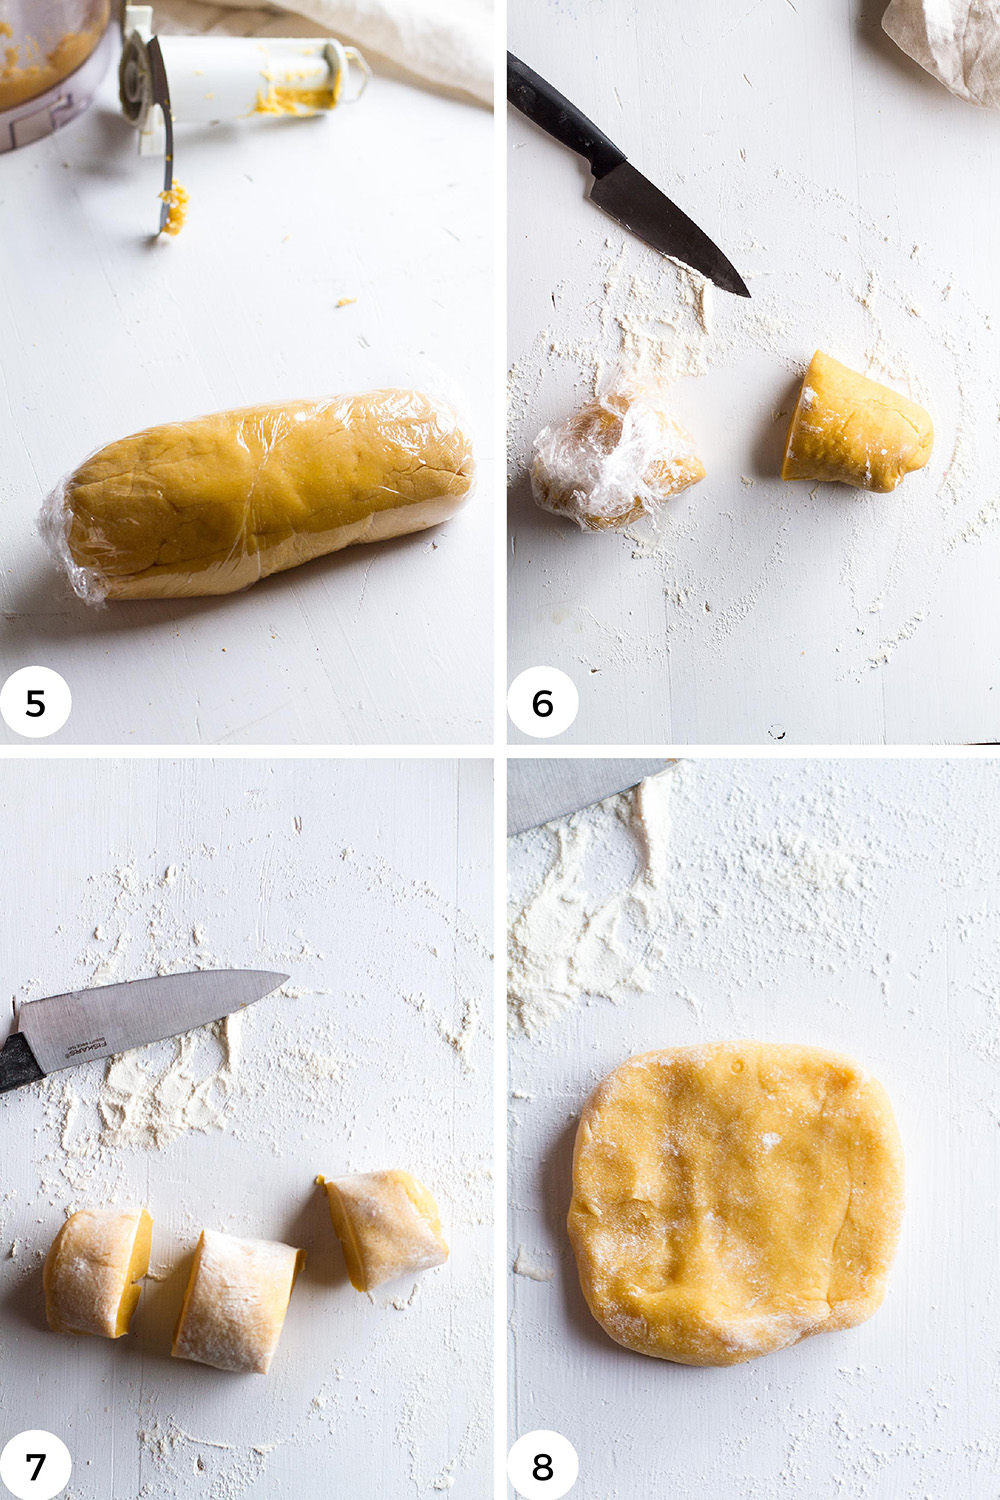 Steps to shape the pasta discs.